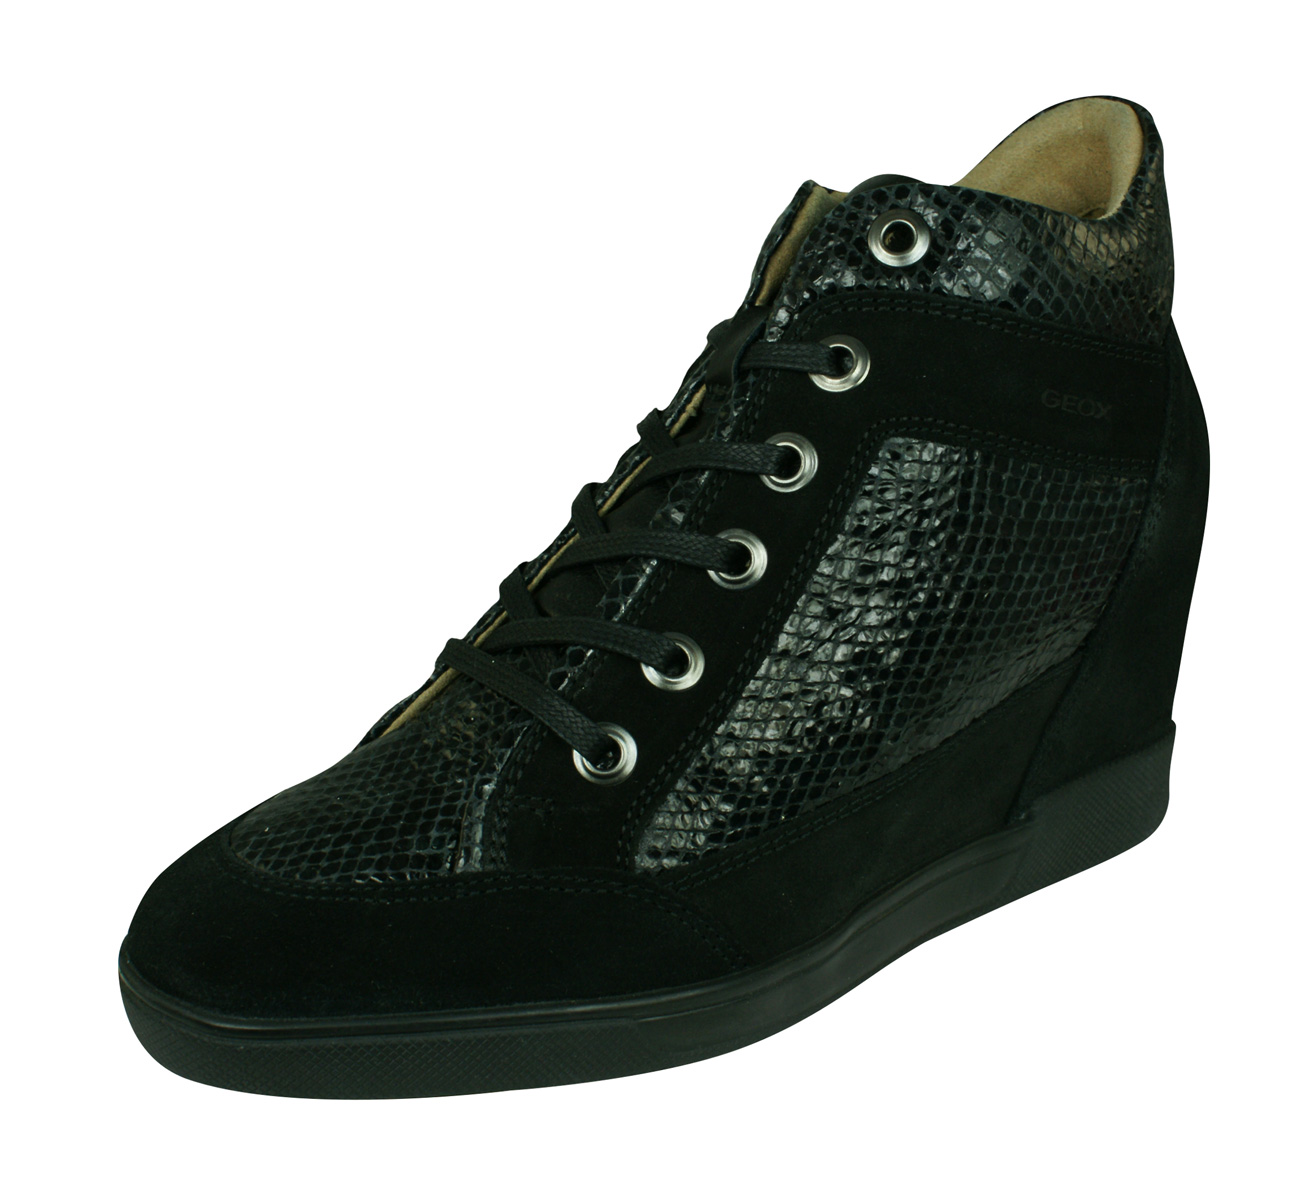 768181782b Geox D Carum C Womens Leather Wedge Trainers / Boots - Black at ...